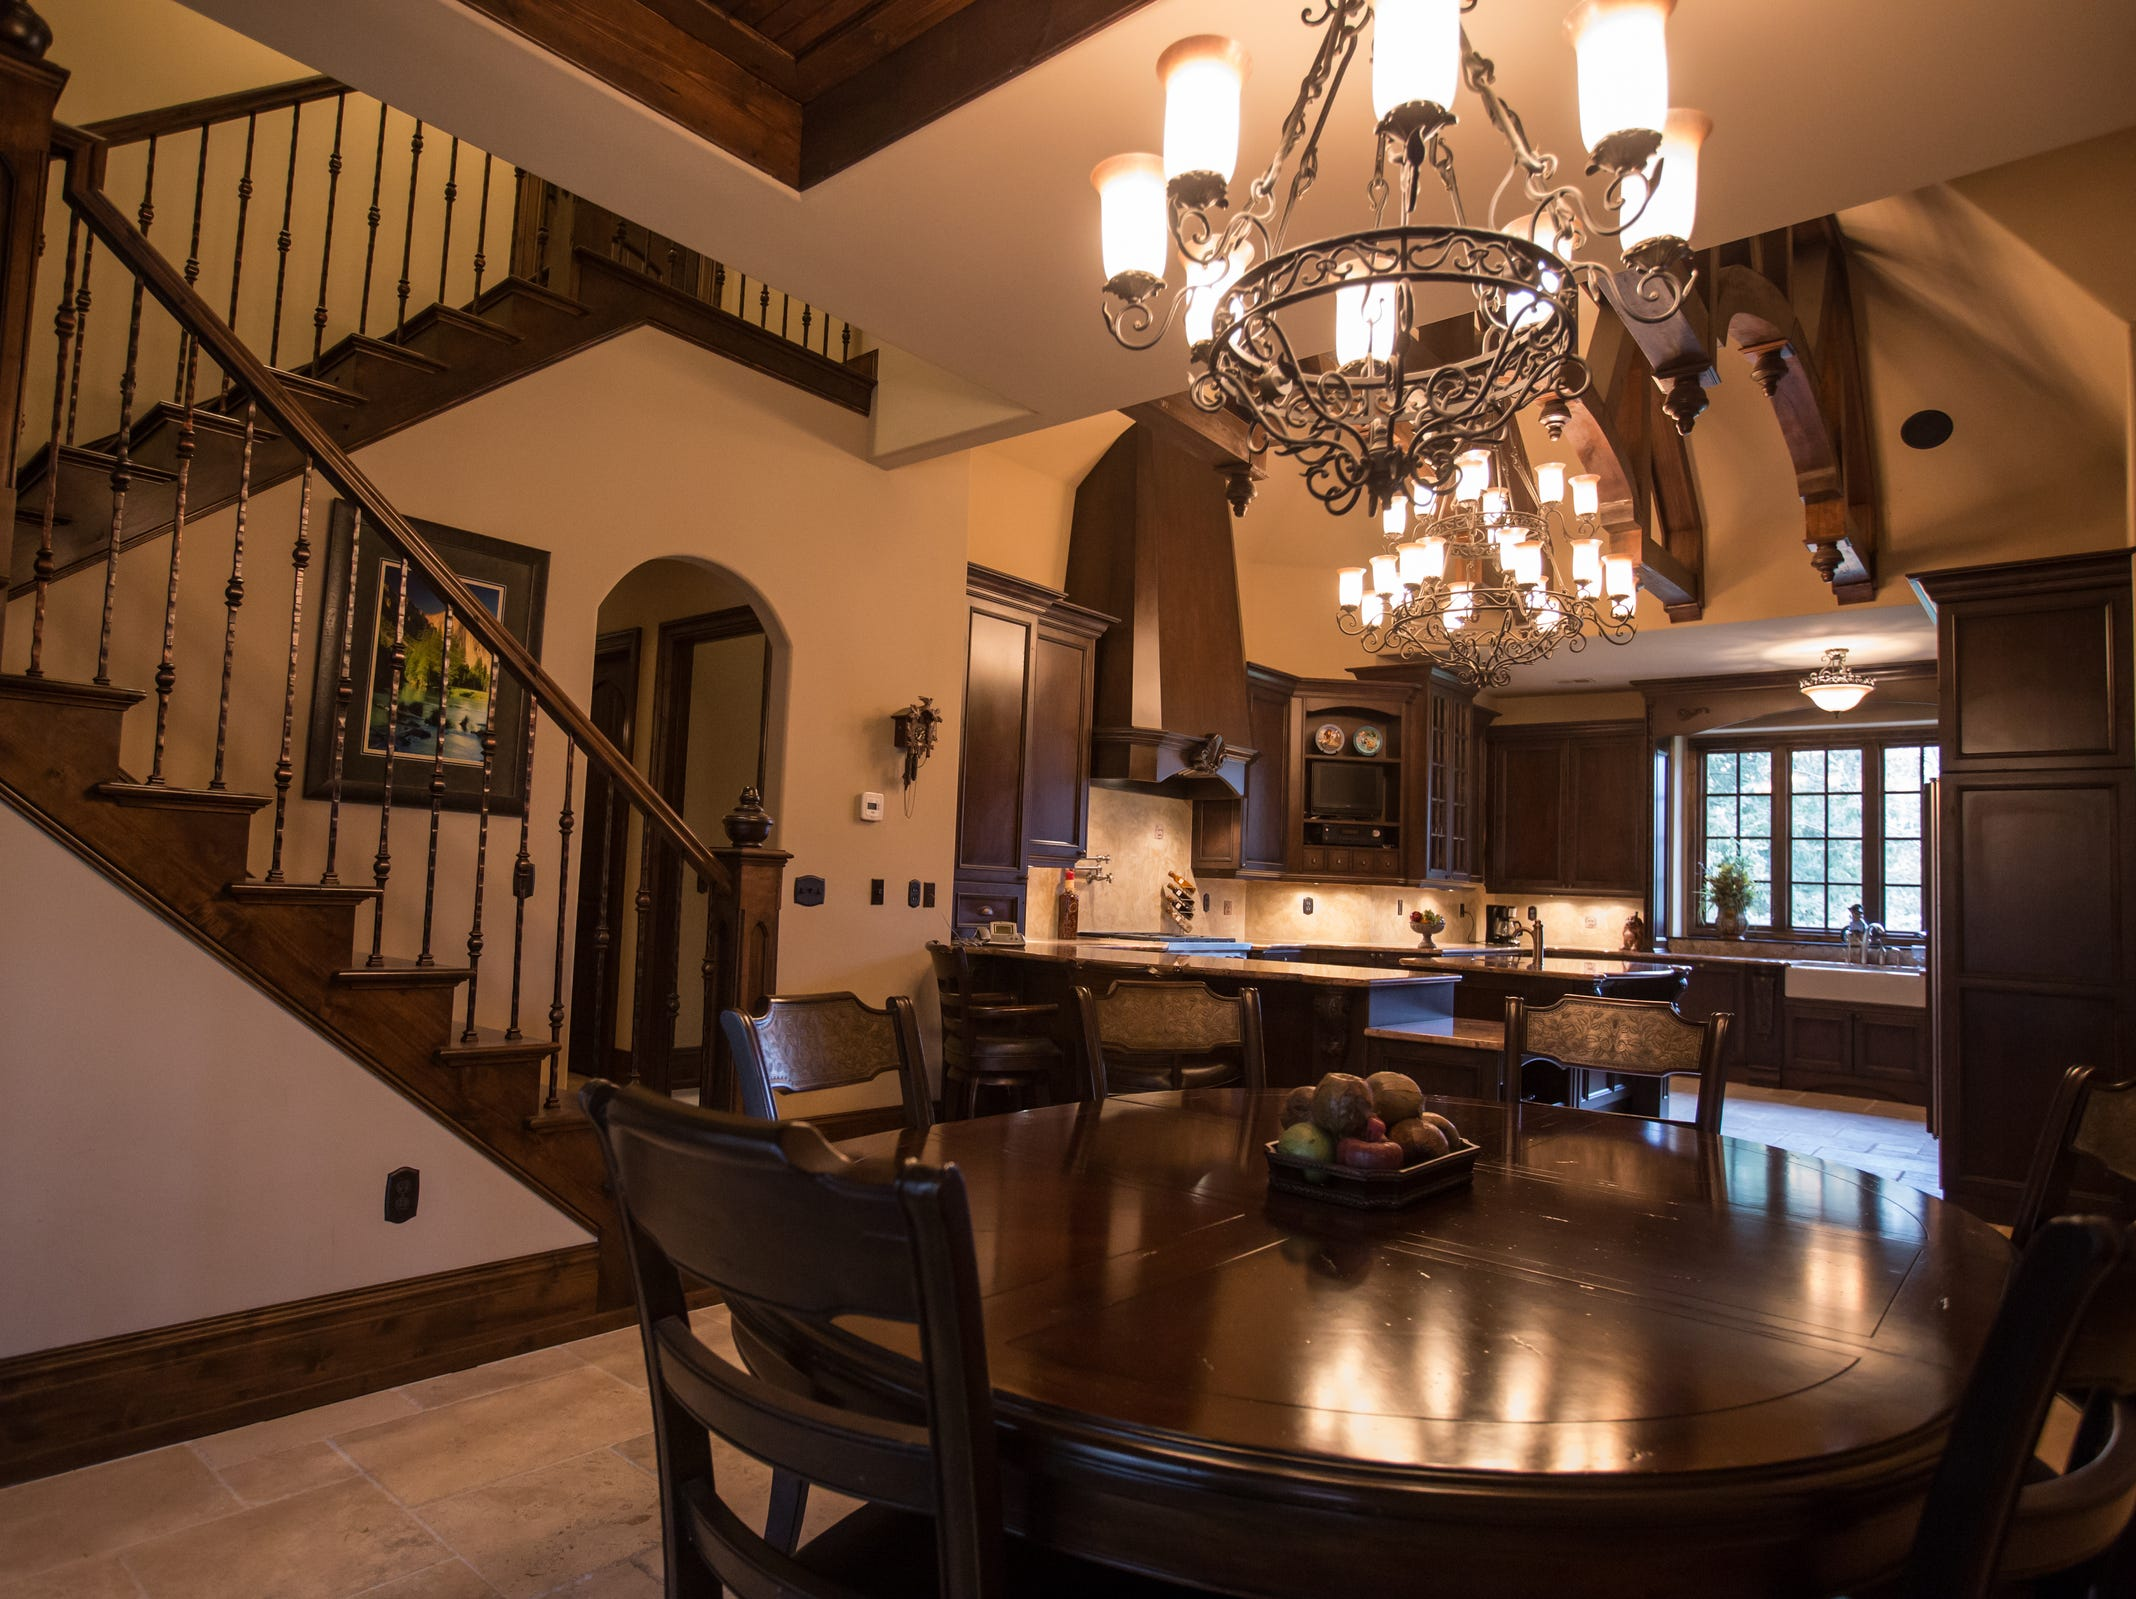 Casual eating is next to the kitchen, with a raised wood ceiling and chandelier. As finished, the house is all one level, but the staircase at left leads to a framed-in second floor area that can be made into more rooms.